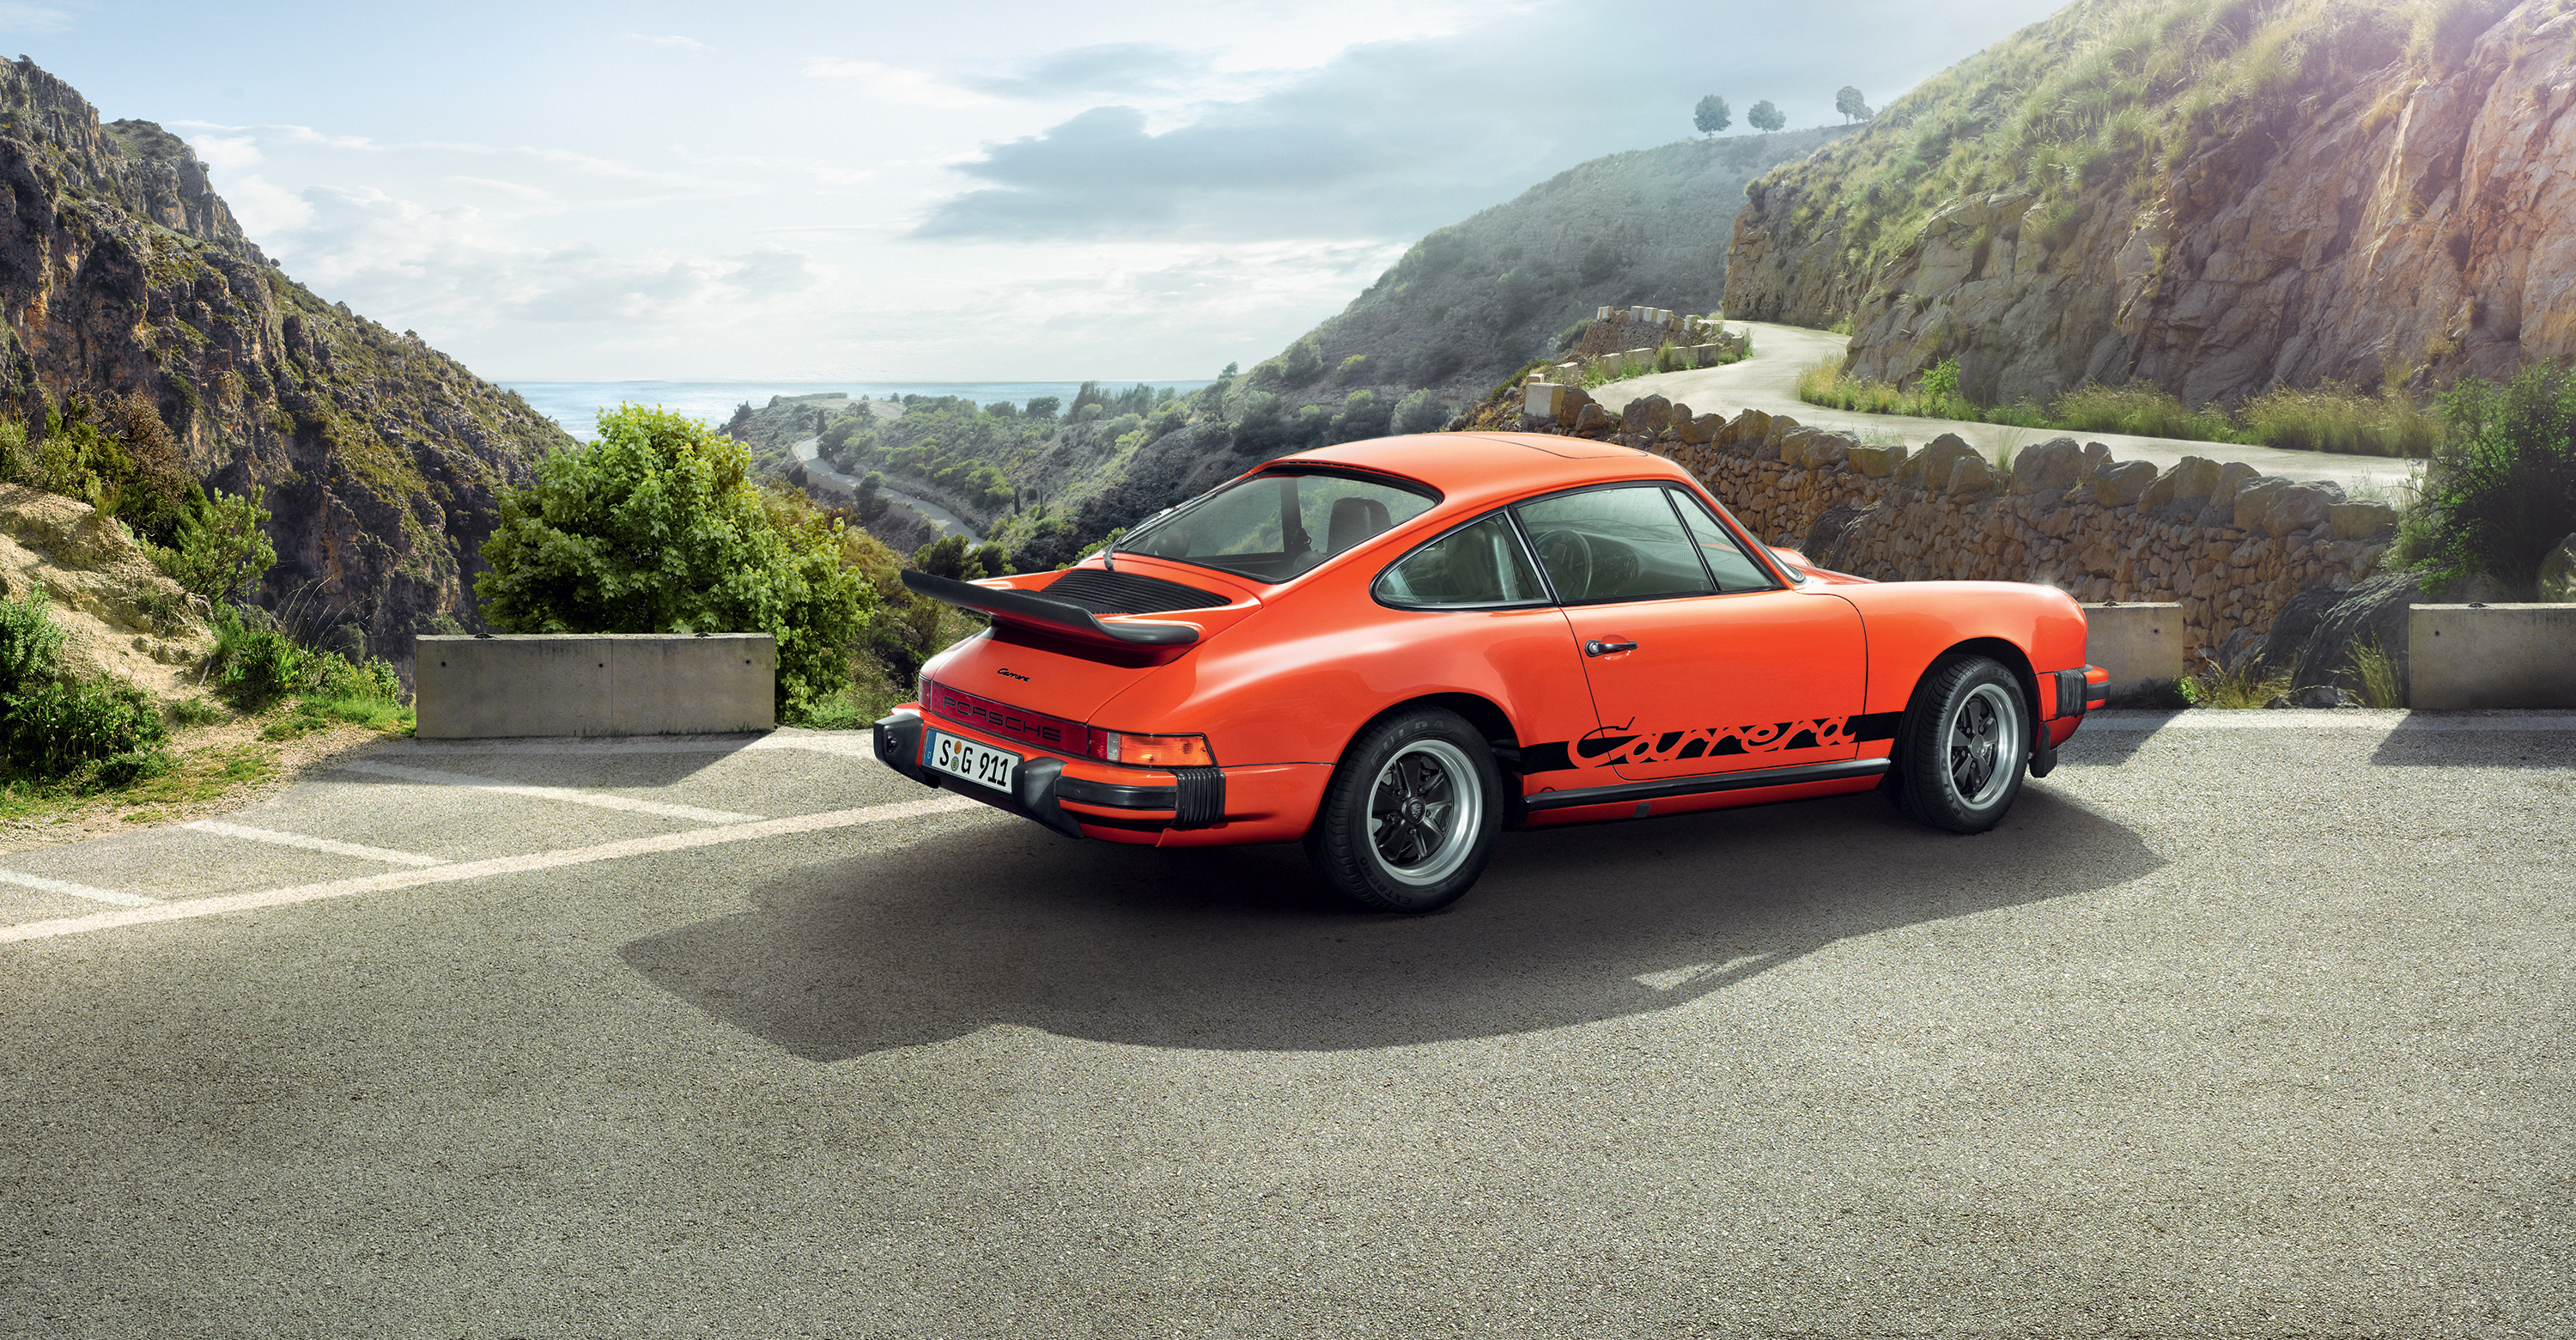 Porsche 911 Carrera Wallpaper